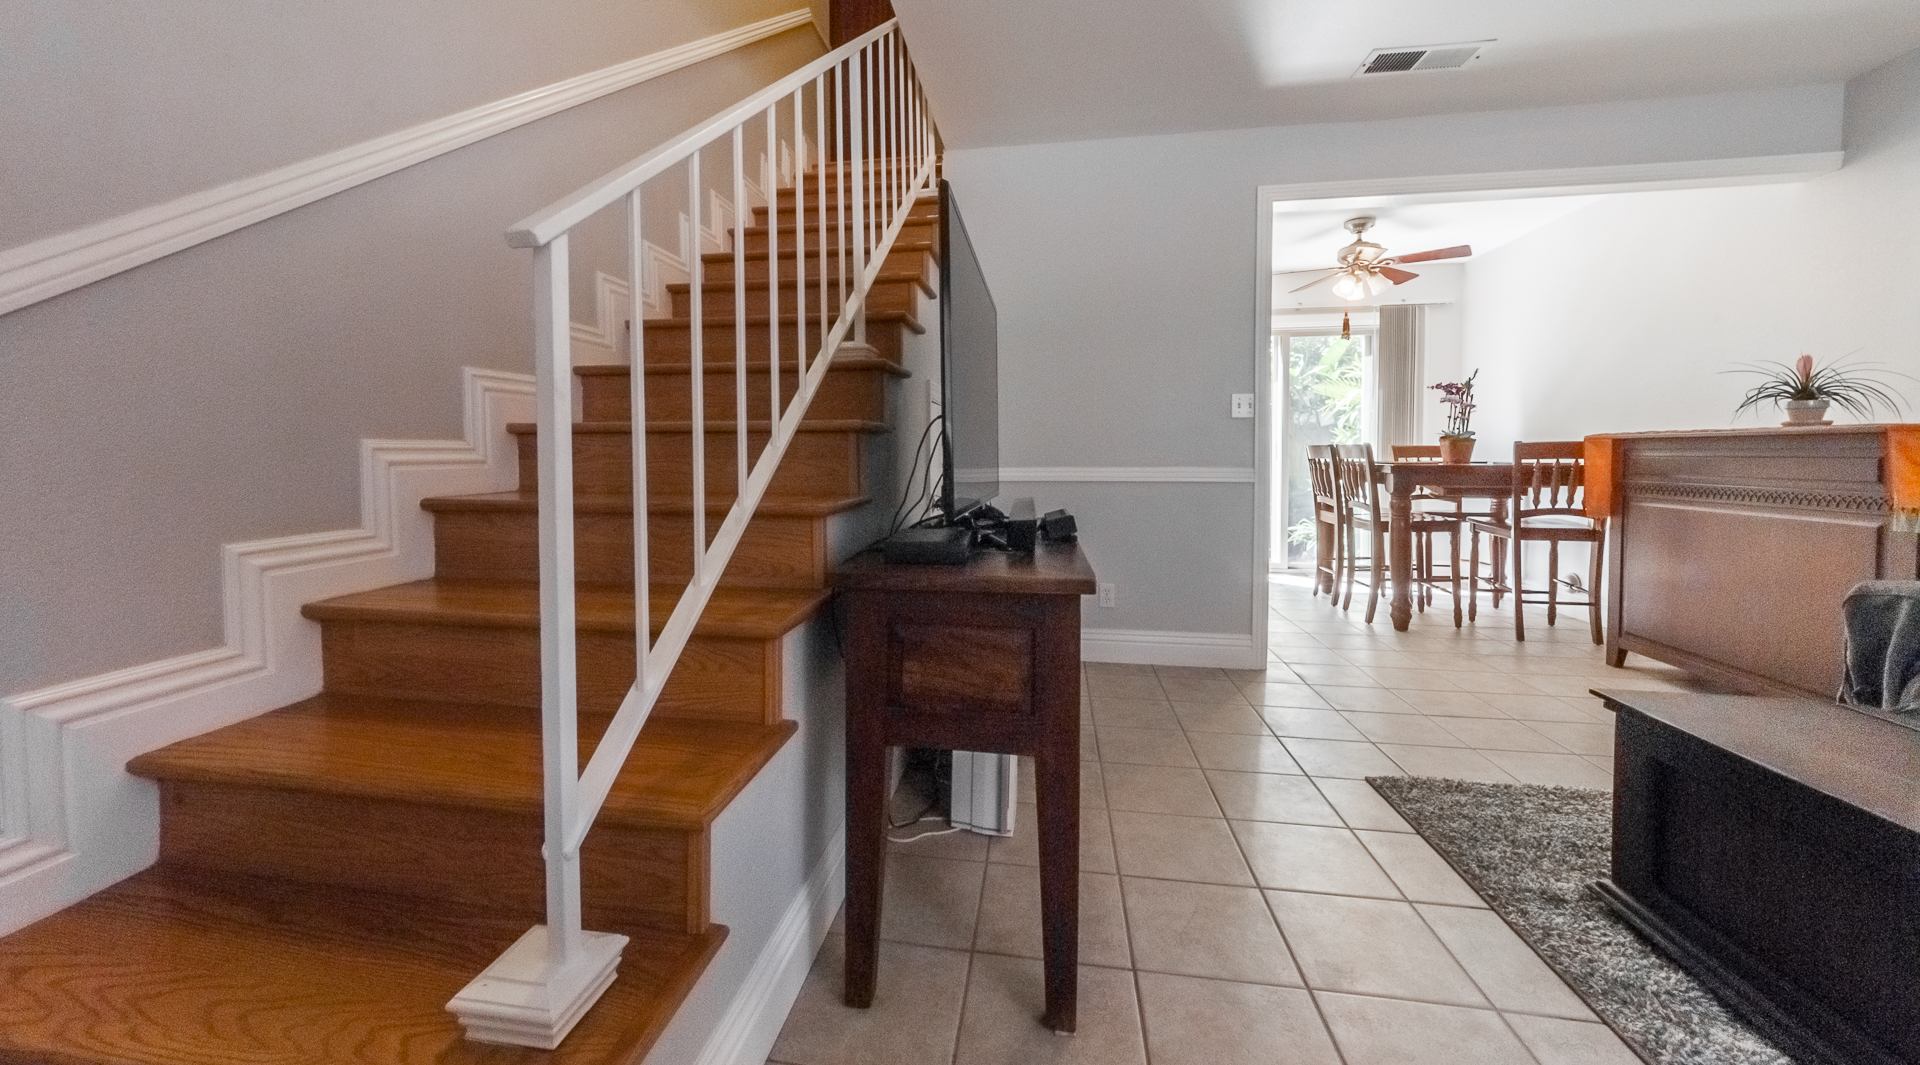 5 - Staircase